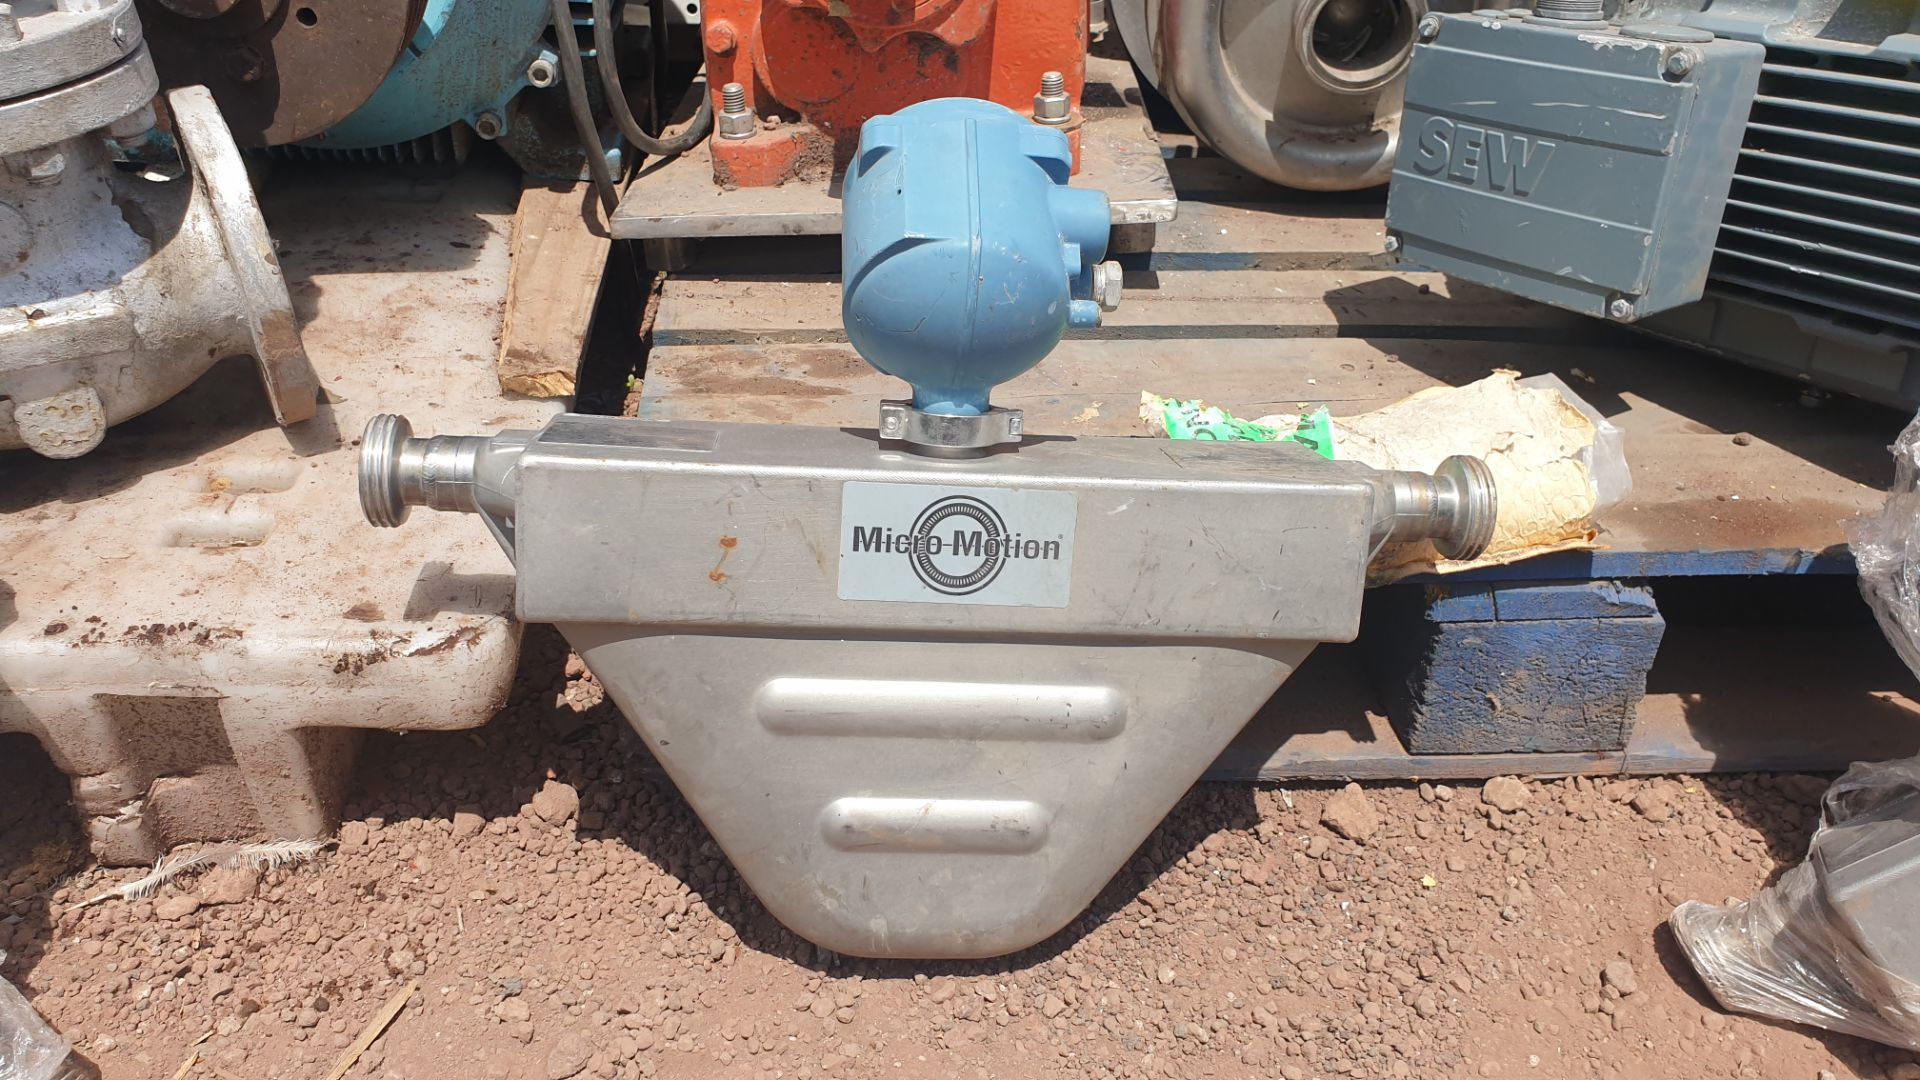 Micromotion Flow meter, model F100S230C2BMSZZZZ NS 14639520 2016 - Image 10 of 10